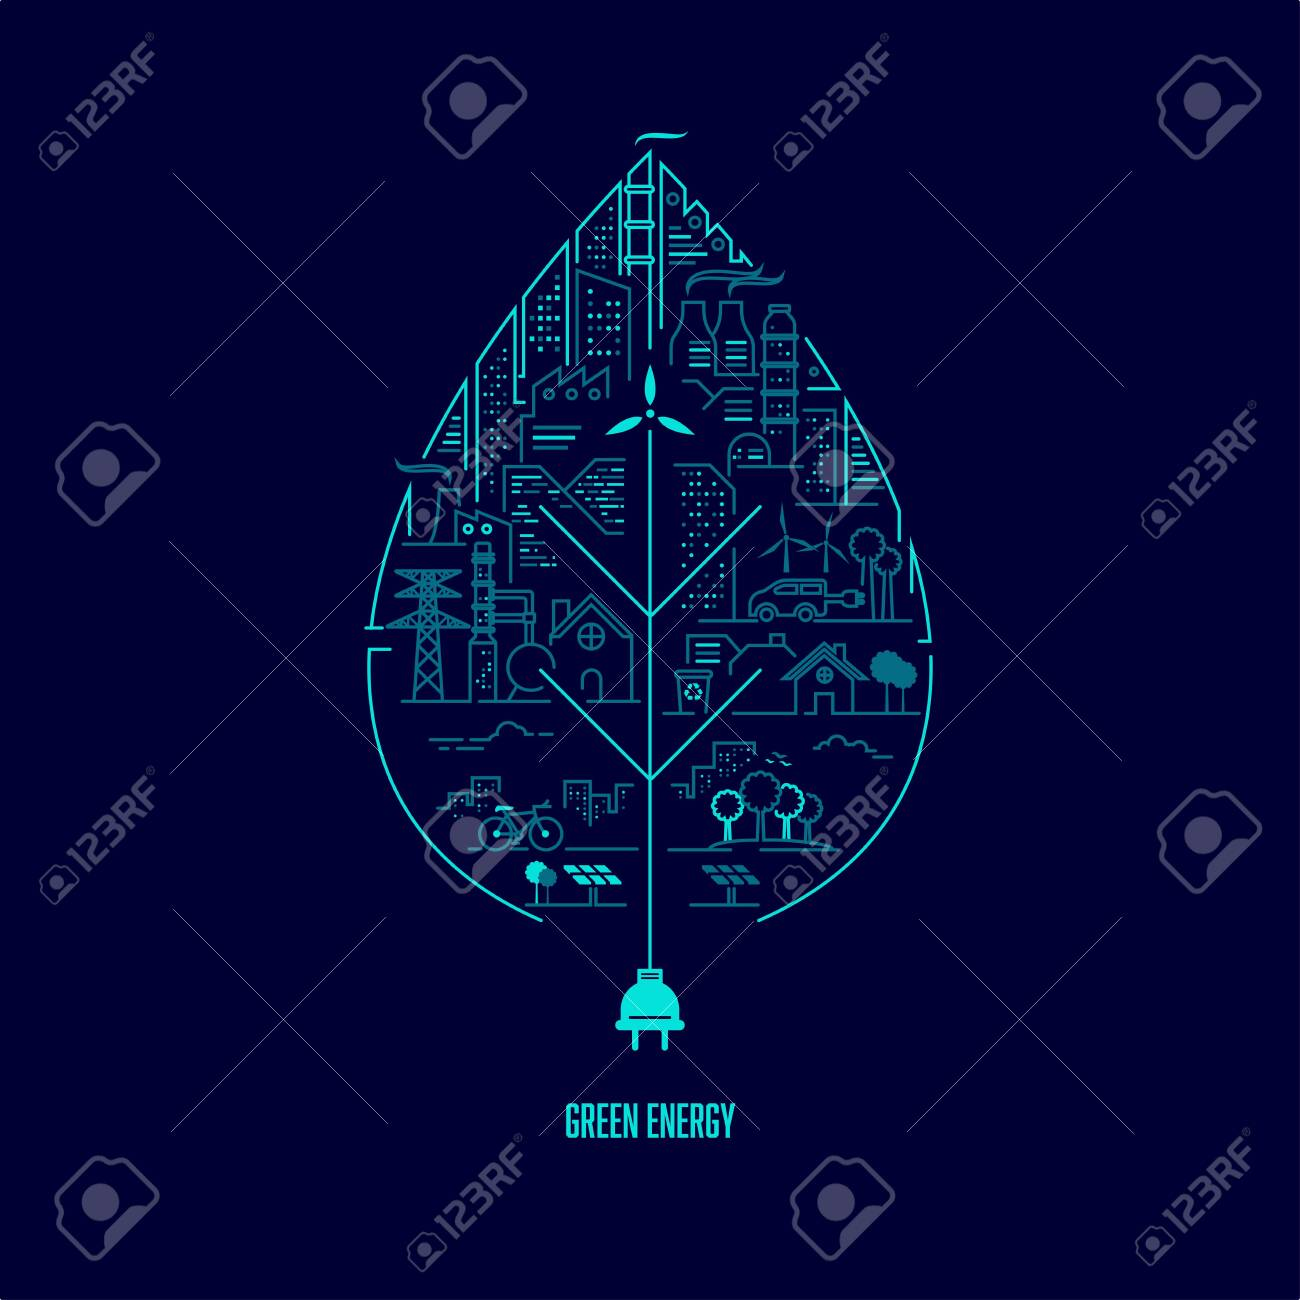 concept of green energy, a single leaf with ecology system inside presented in lined graphic with editable path - 140255923